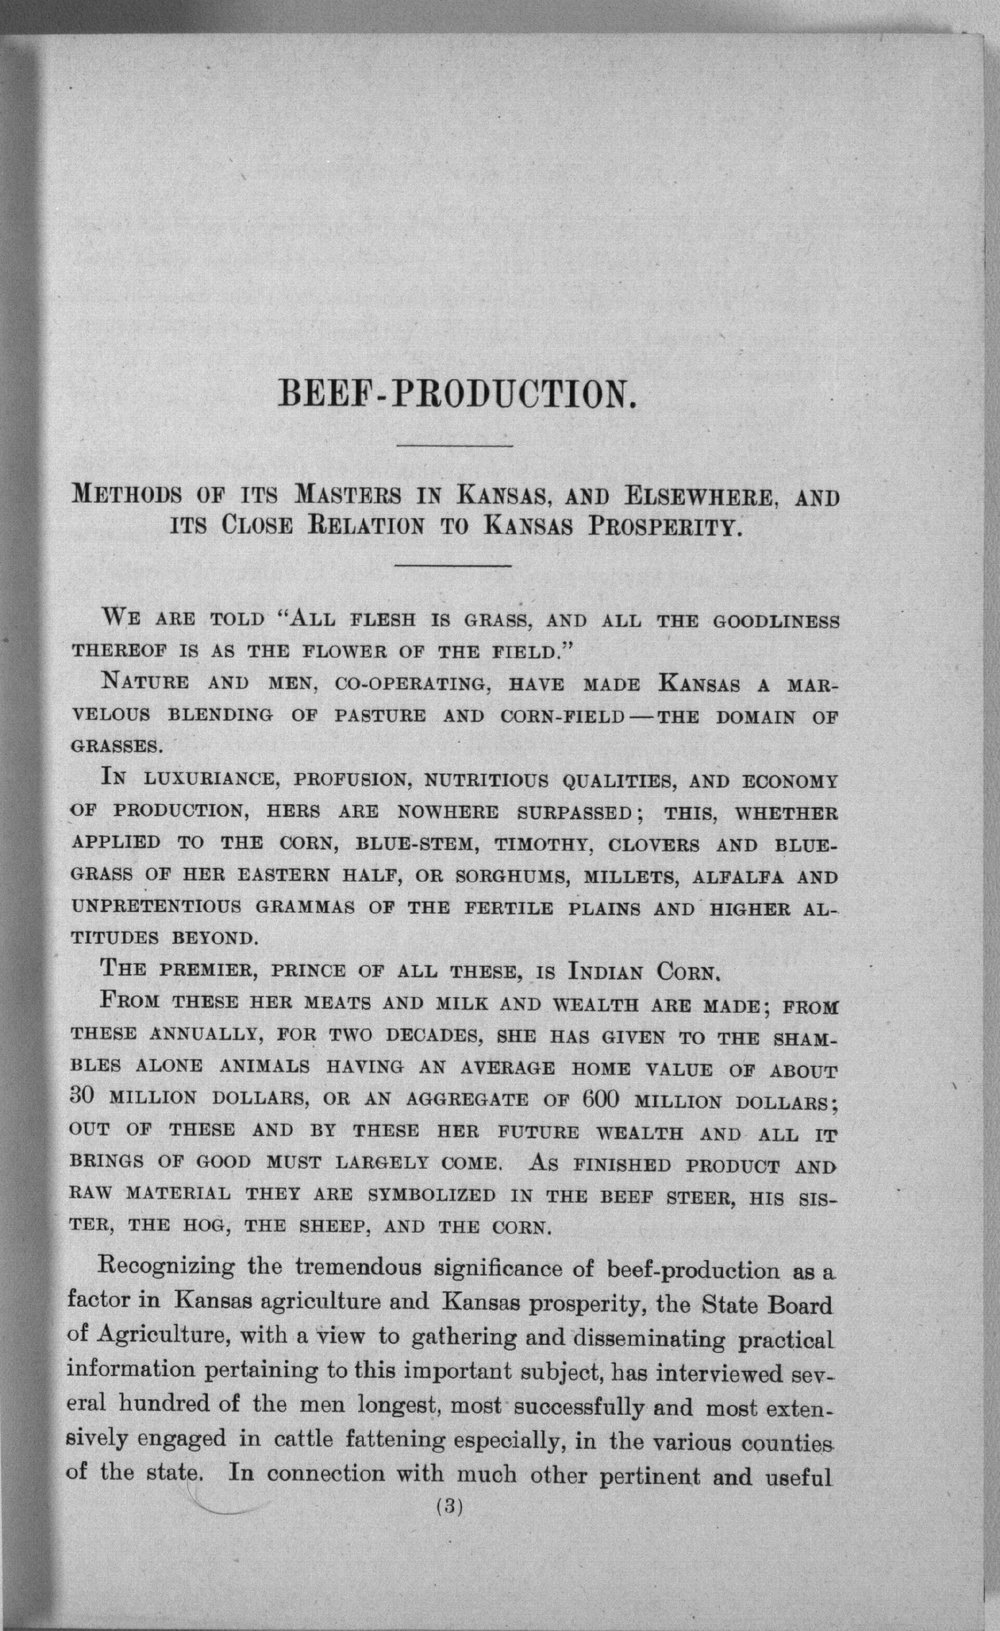 Eleventh biennial report of the Kansas State Board of Agriculture, 1897-98 - 3